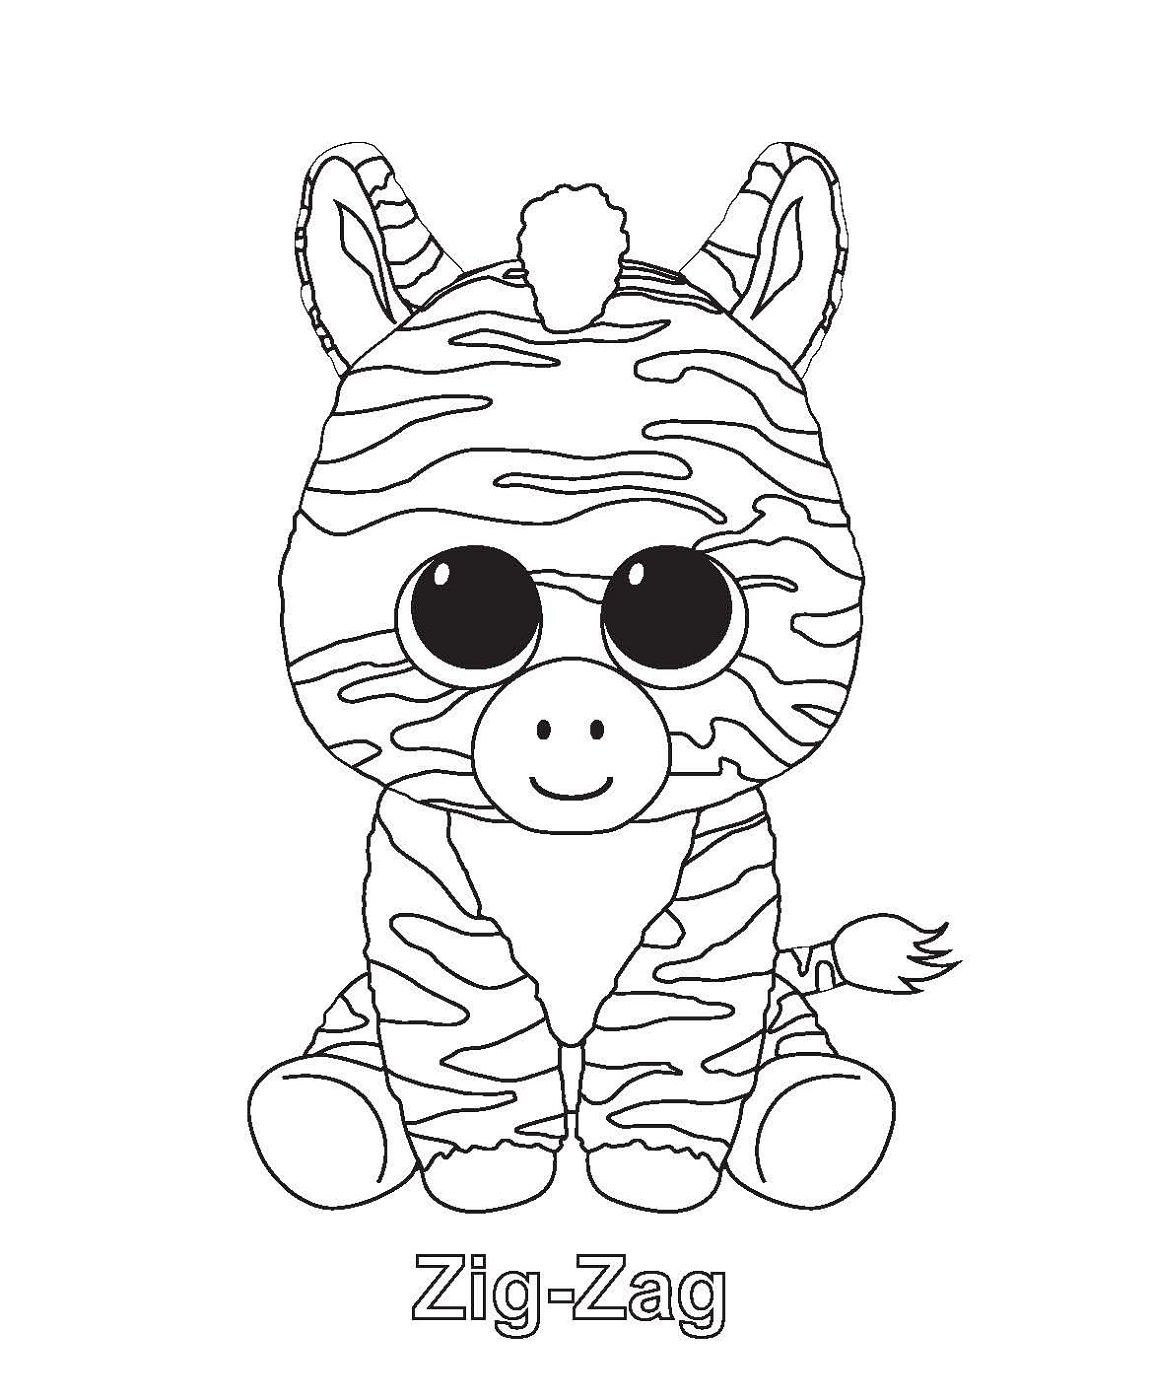 Zig Zag Beanie Boo Coloring Pages K5 Worksheets Ausmalbilder Ausmalbilder Tiere Beanie Boo Party